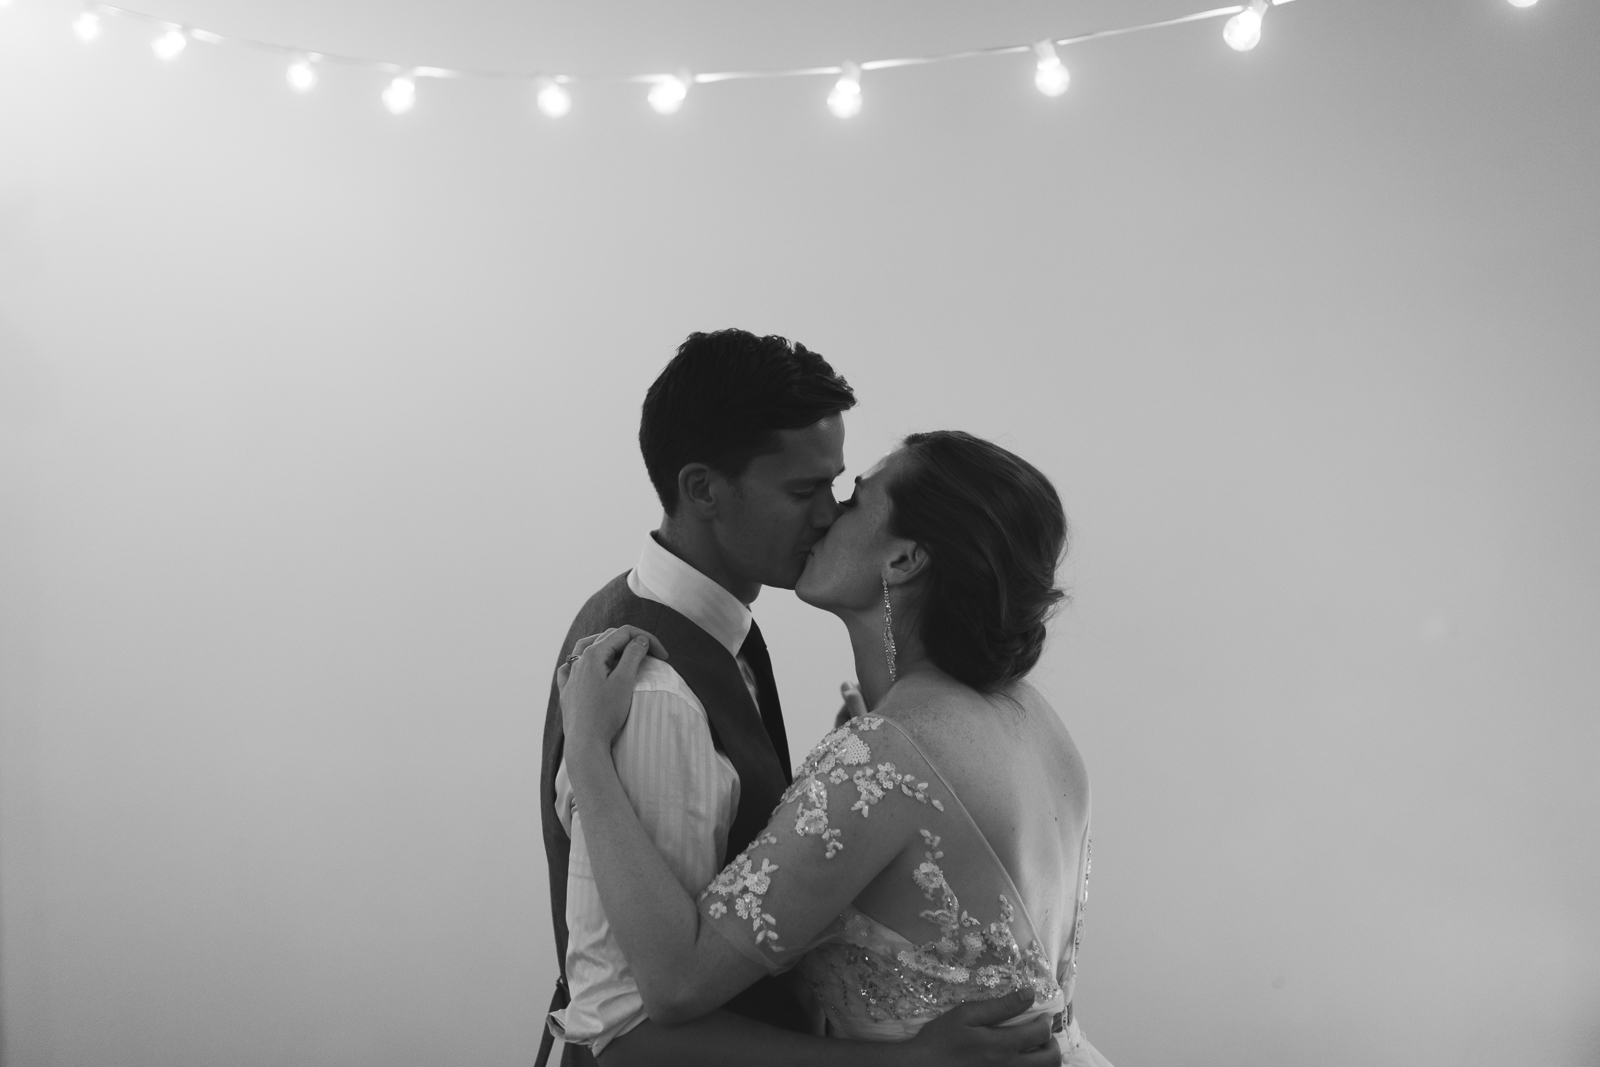 123Willow_and_Wolf_Photography_Katie_and_James_Waterton_Wedding_Blog9-Willow_and_Wolf_Photography_Katie_and_James_Waterton_Wedding_Dancing_BEC_6231